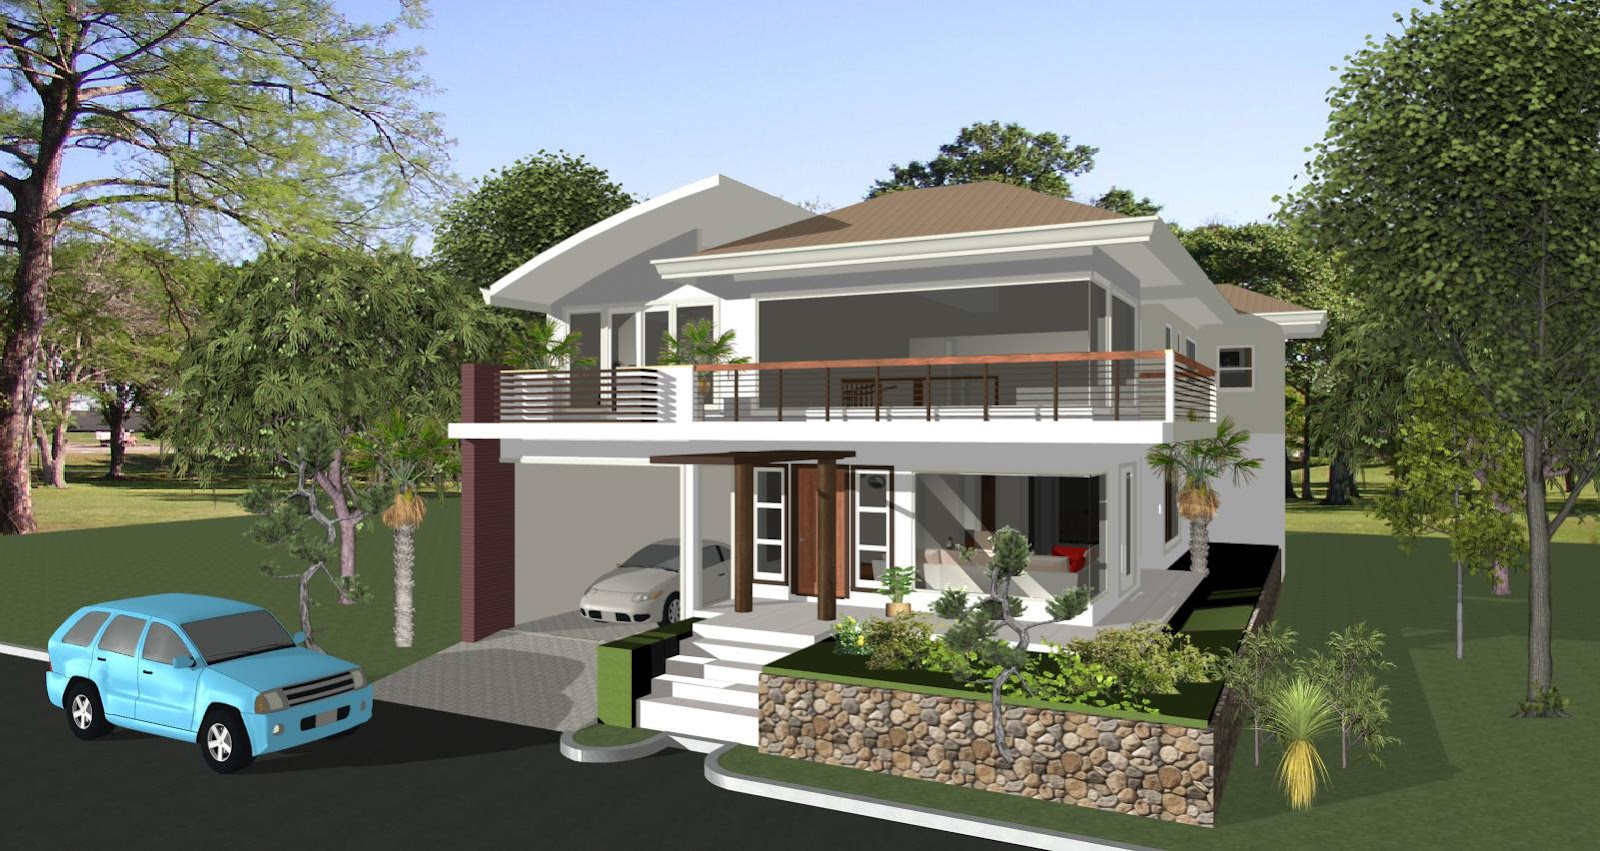 House designs philippines architect bill house plans for Best architect house designs